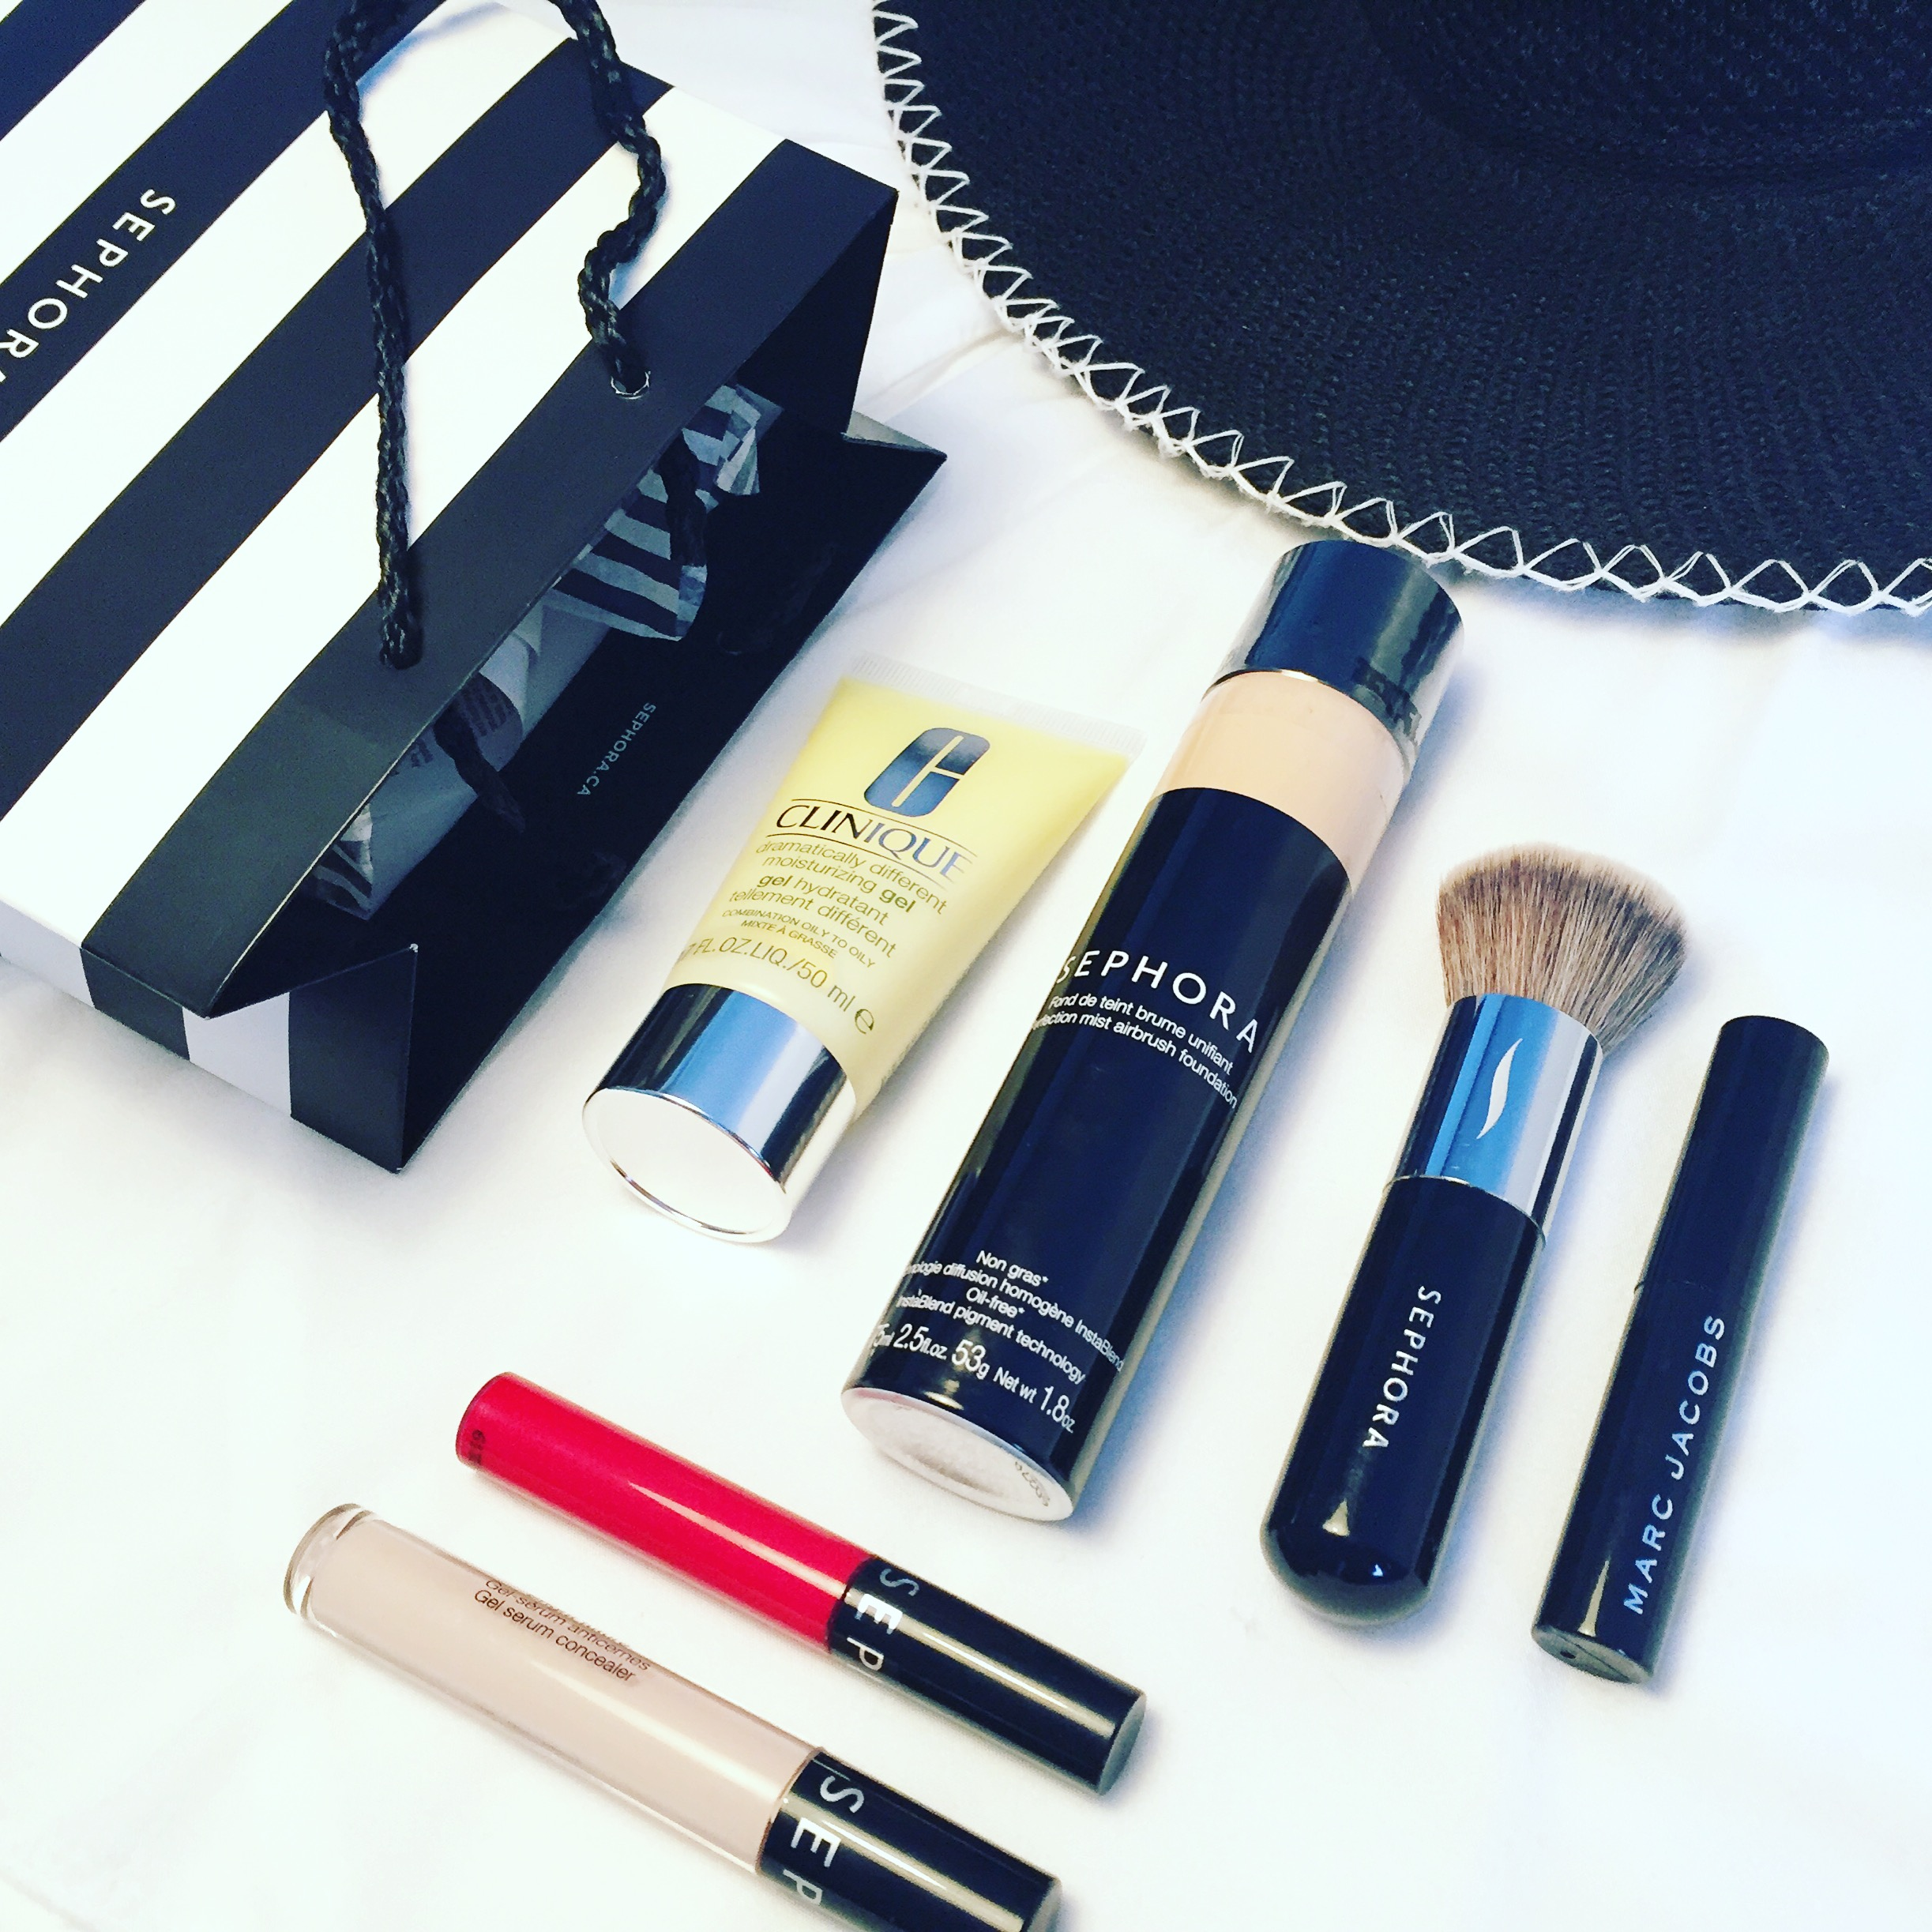 I don't mess around when it comes to makeup on vacation-especially when it comes to sun destinations. Check out my super simple makeup routine for beach and ...